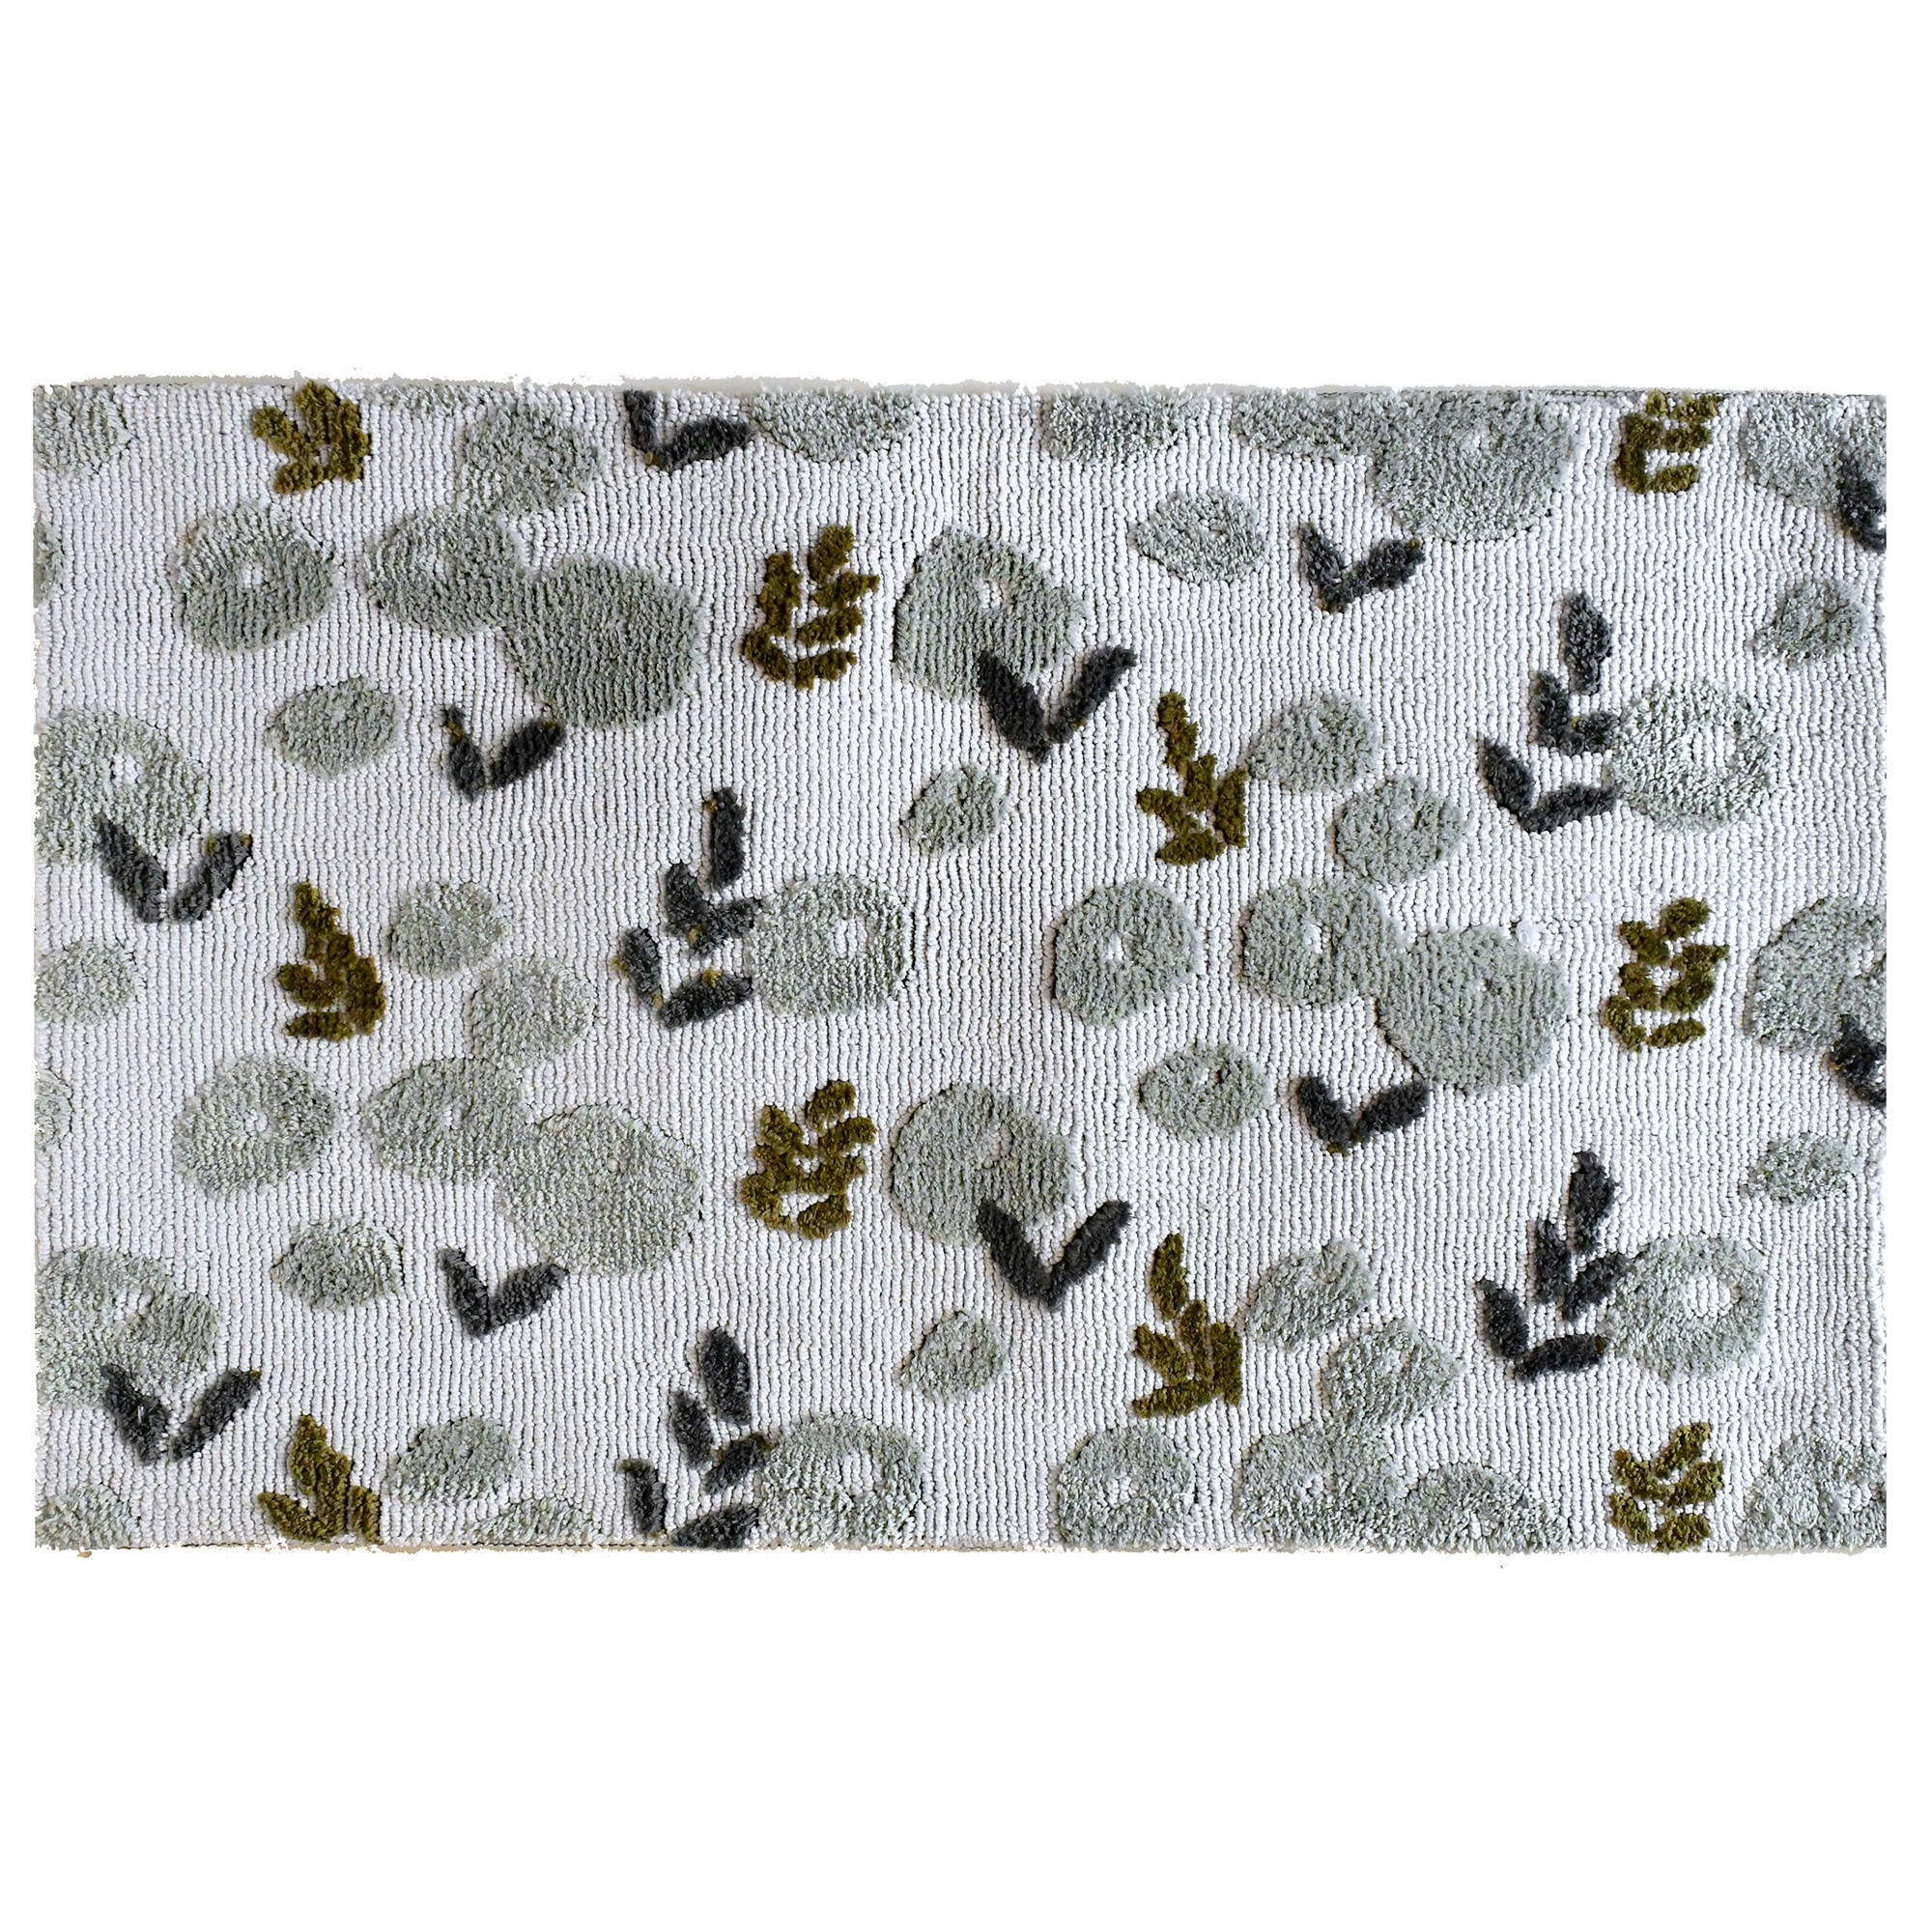 Gray blooms dot the background of this white Simple Spaces by Jellybean® accent rug. Artist Kris Ruff offers a neutral combination of colors that will fit seamlessly in a myriad of spaces. Available in two sizes, this area rug is ideal as a gift or kept for self.